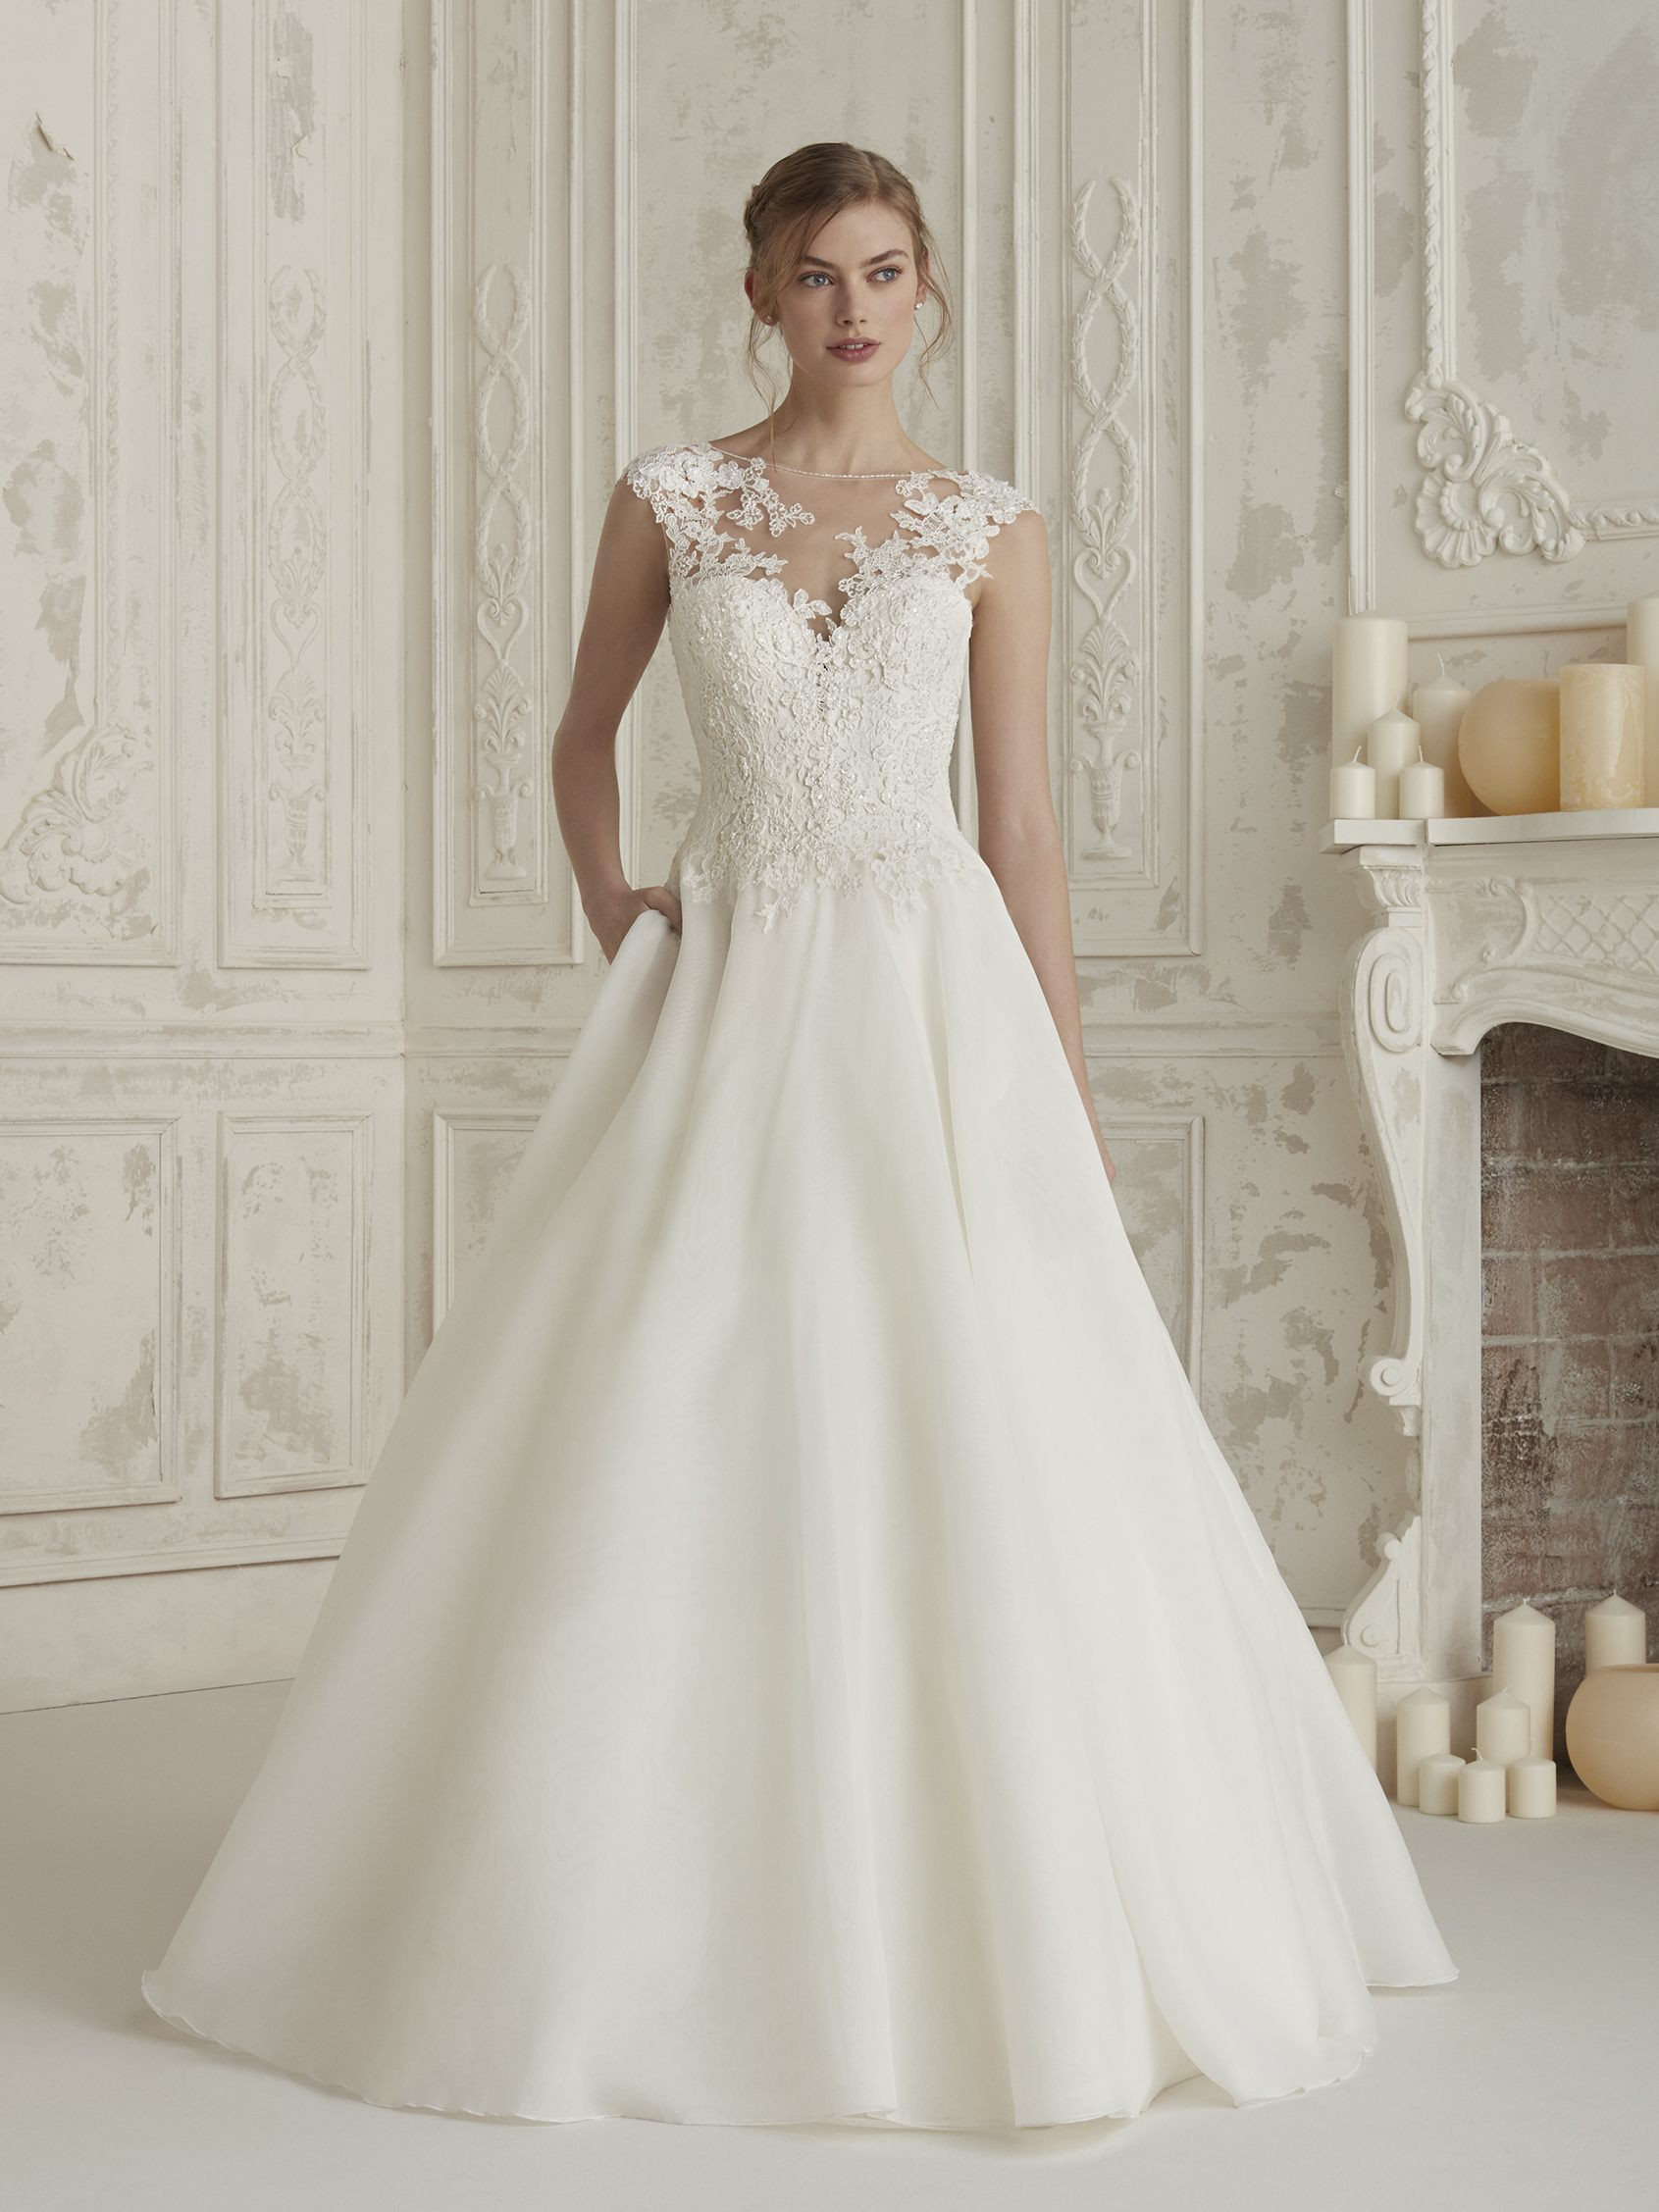 Sophisticated princess-style wedding dress ELIODORA | Pronovias